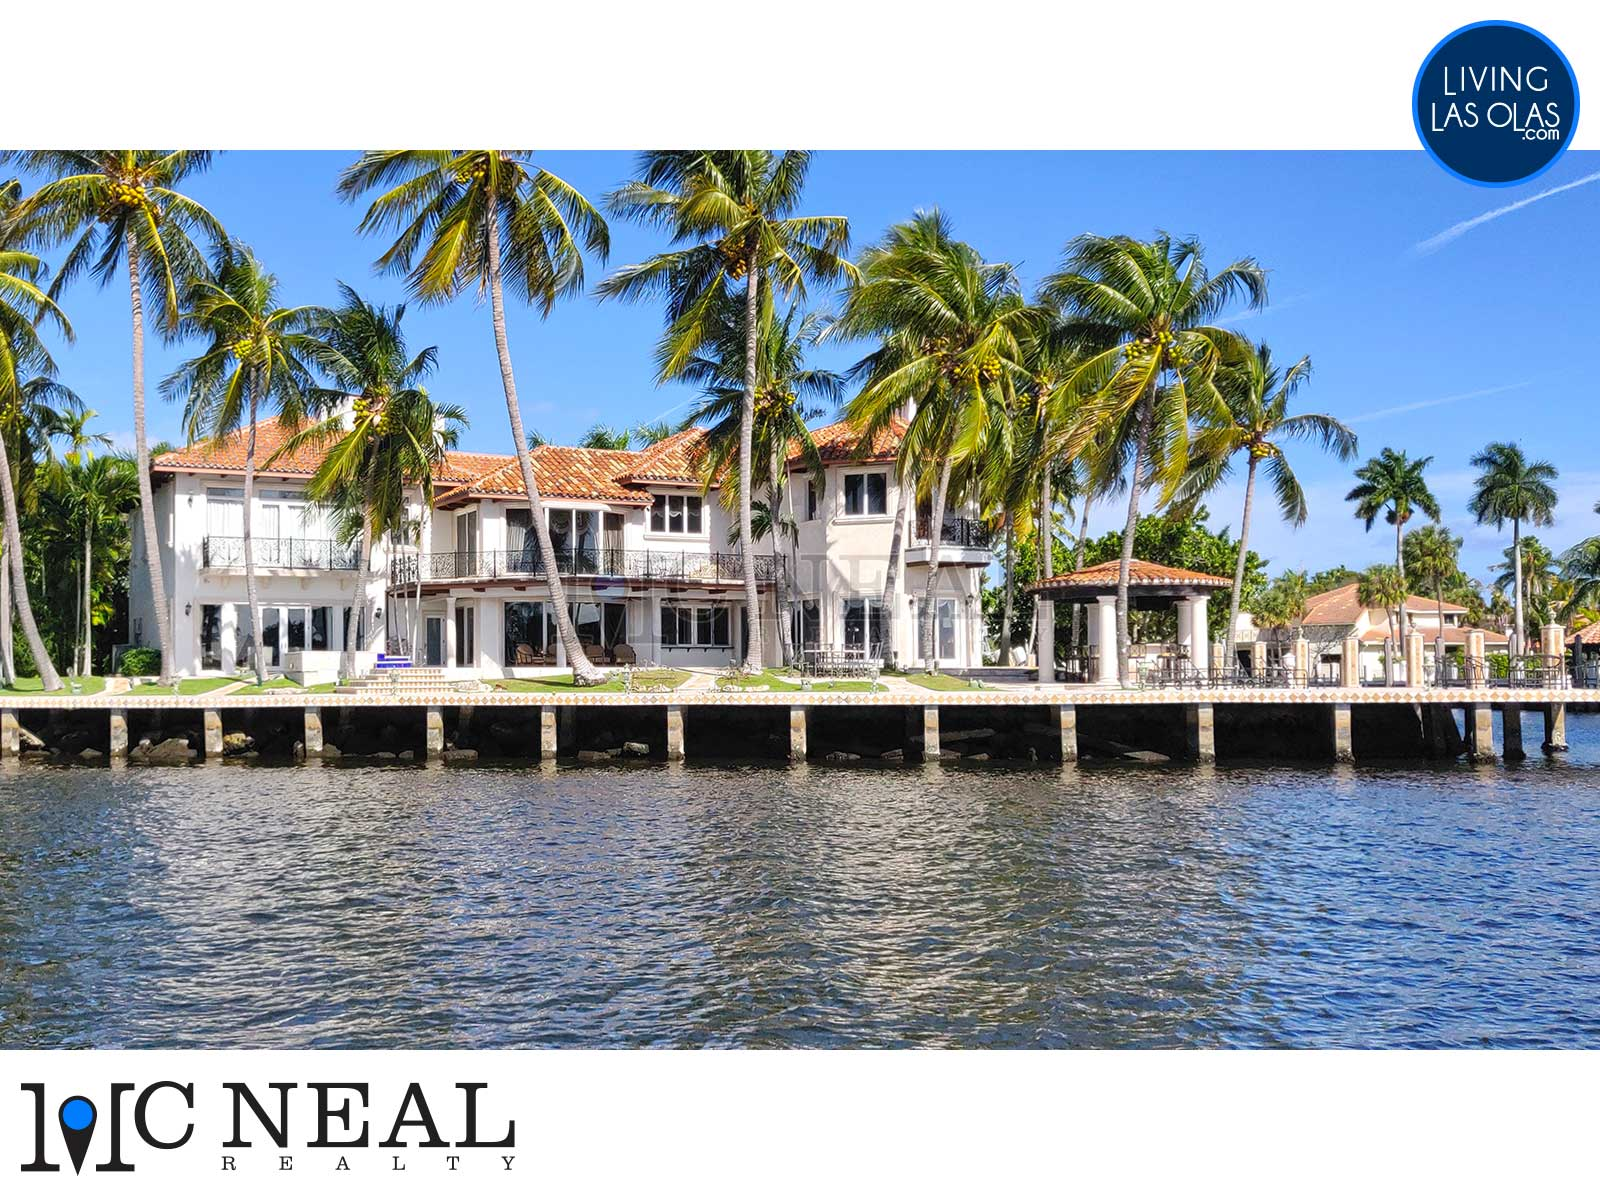 Las Olas Isles Homes Real Estate 06